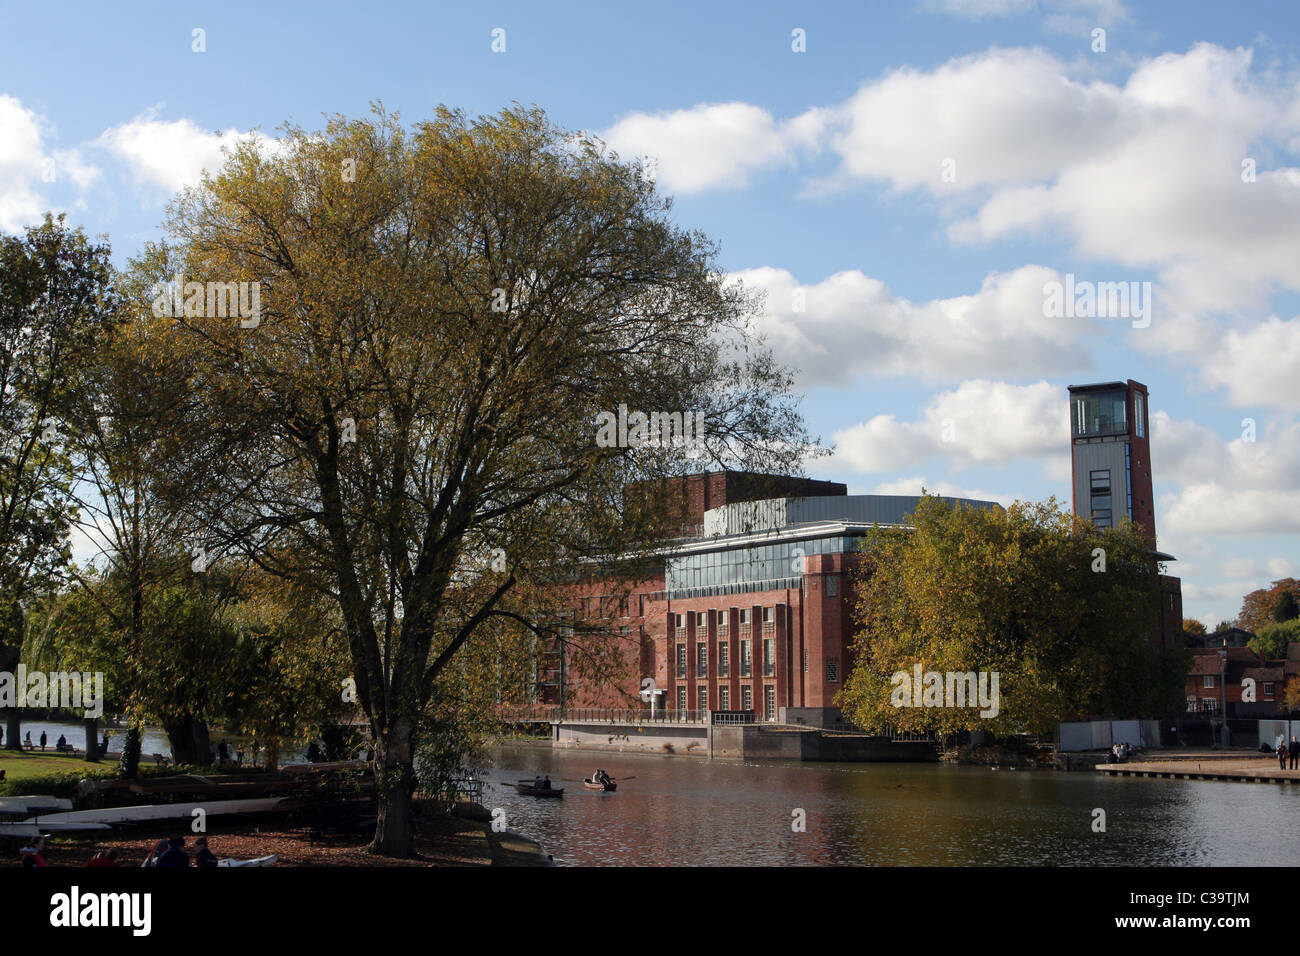 View of Royal Shakespeare Theatre over the River Avon in Stratford-upon-Avon,  Warwickshire, England, UK - Stock Image